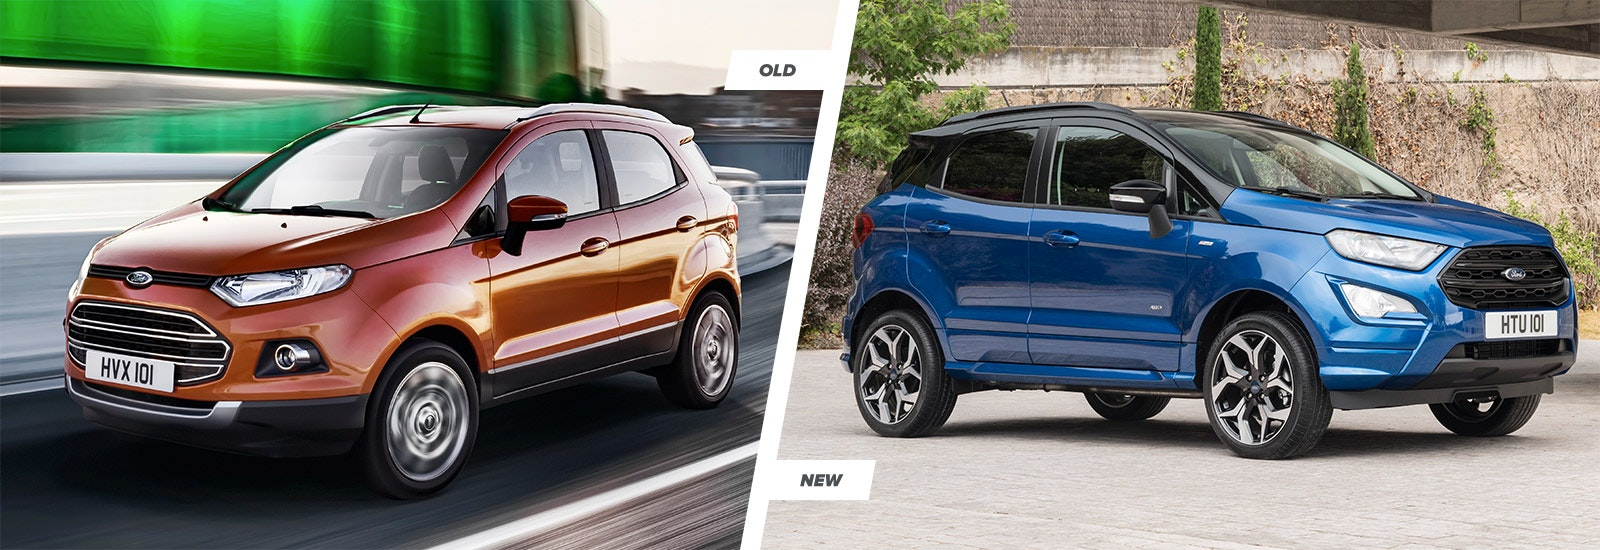 ... outgoing Ford EcoSport. Click u0027loginu0027 in the top-right-hand corner to sign up and configure a new car or browse our extensive range of new ... & Ford EcoSport SUV price specs release date | carwow markmcfarlin.com